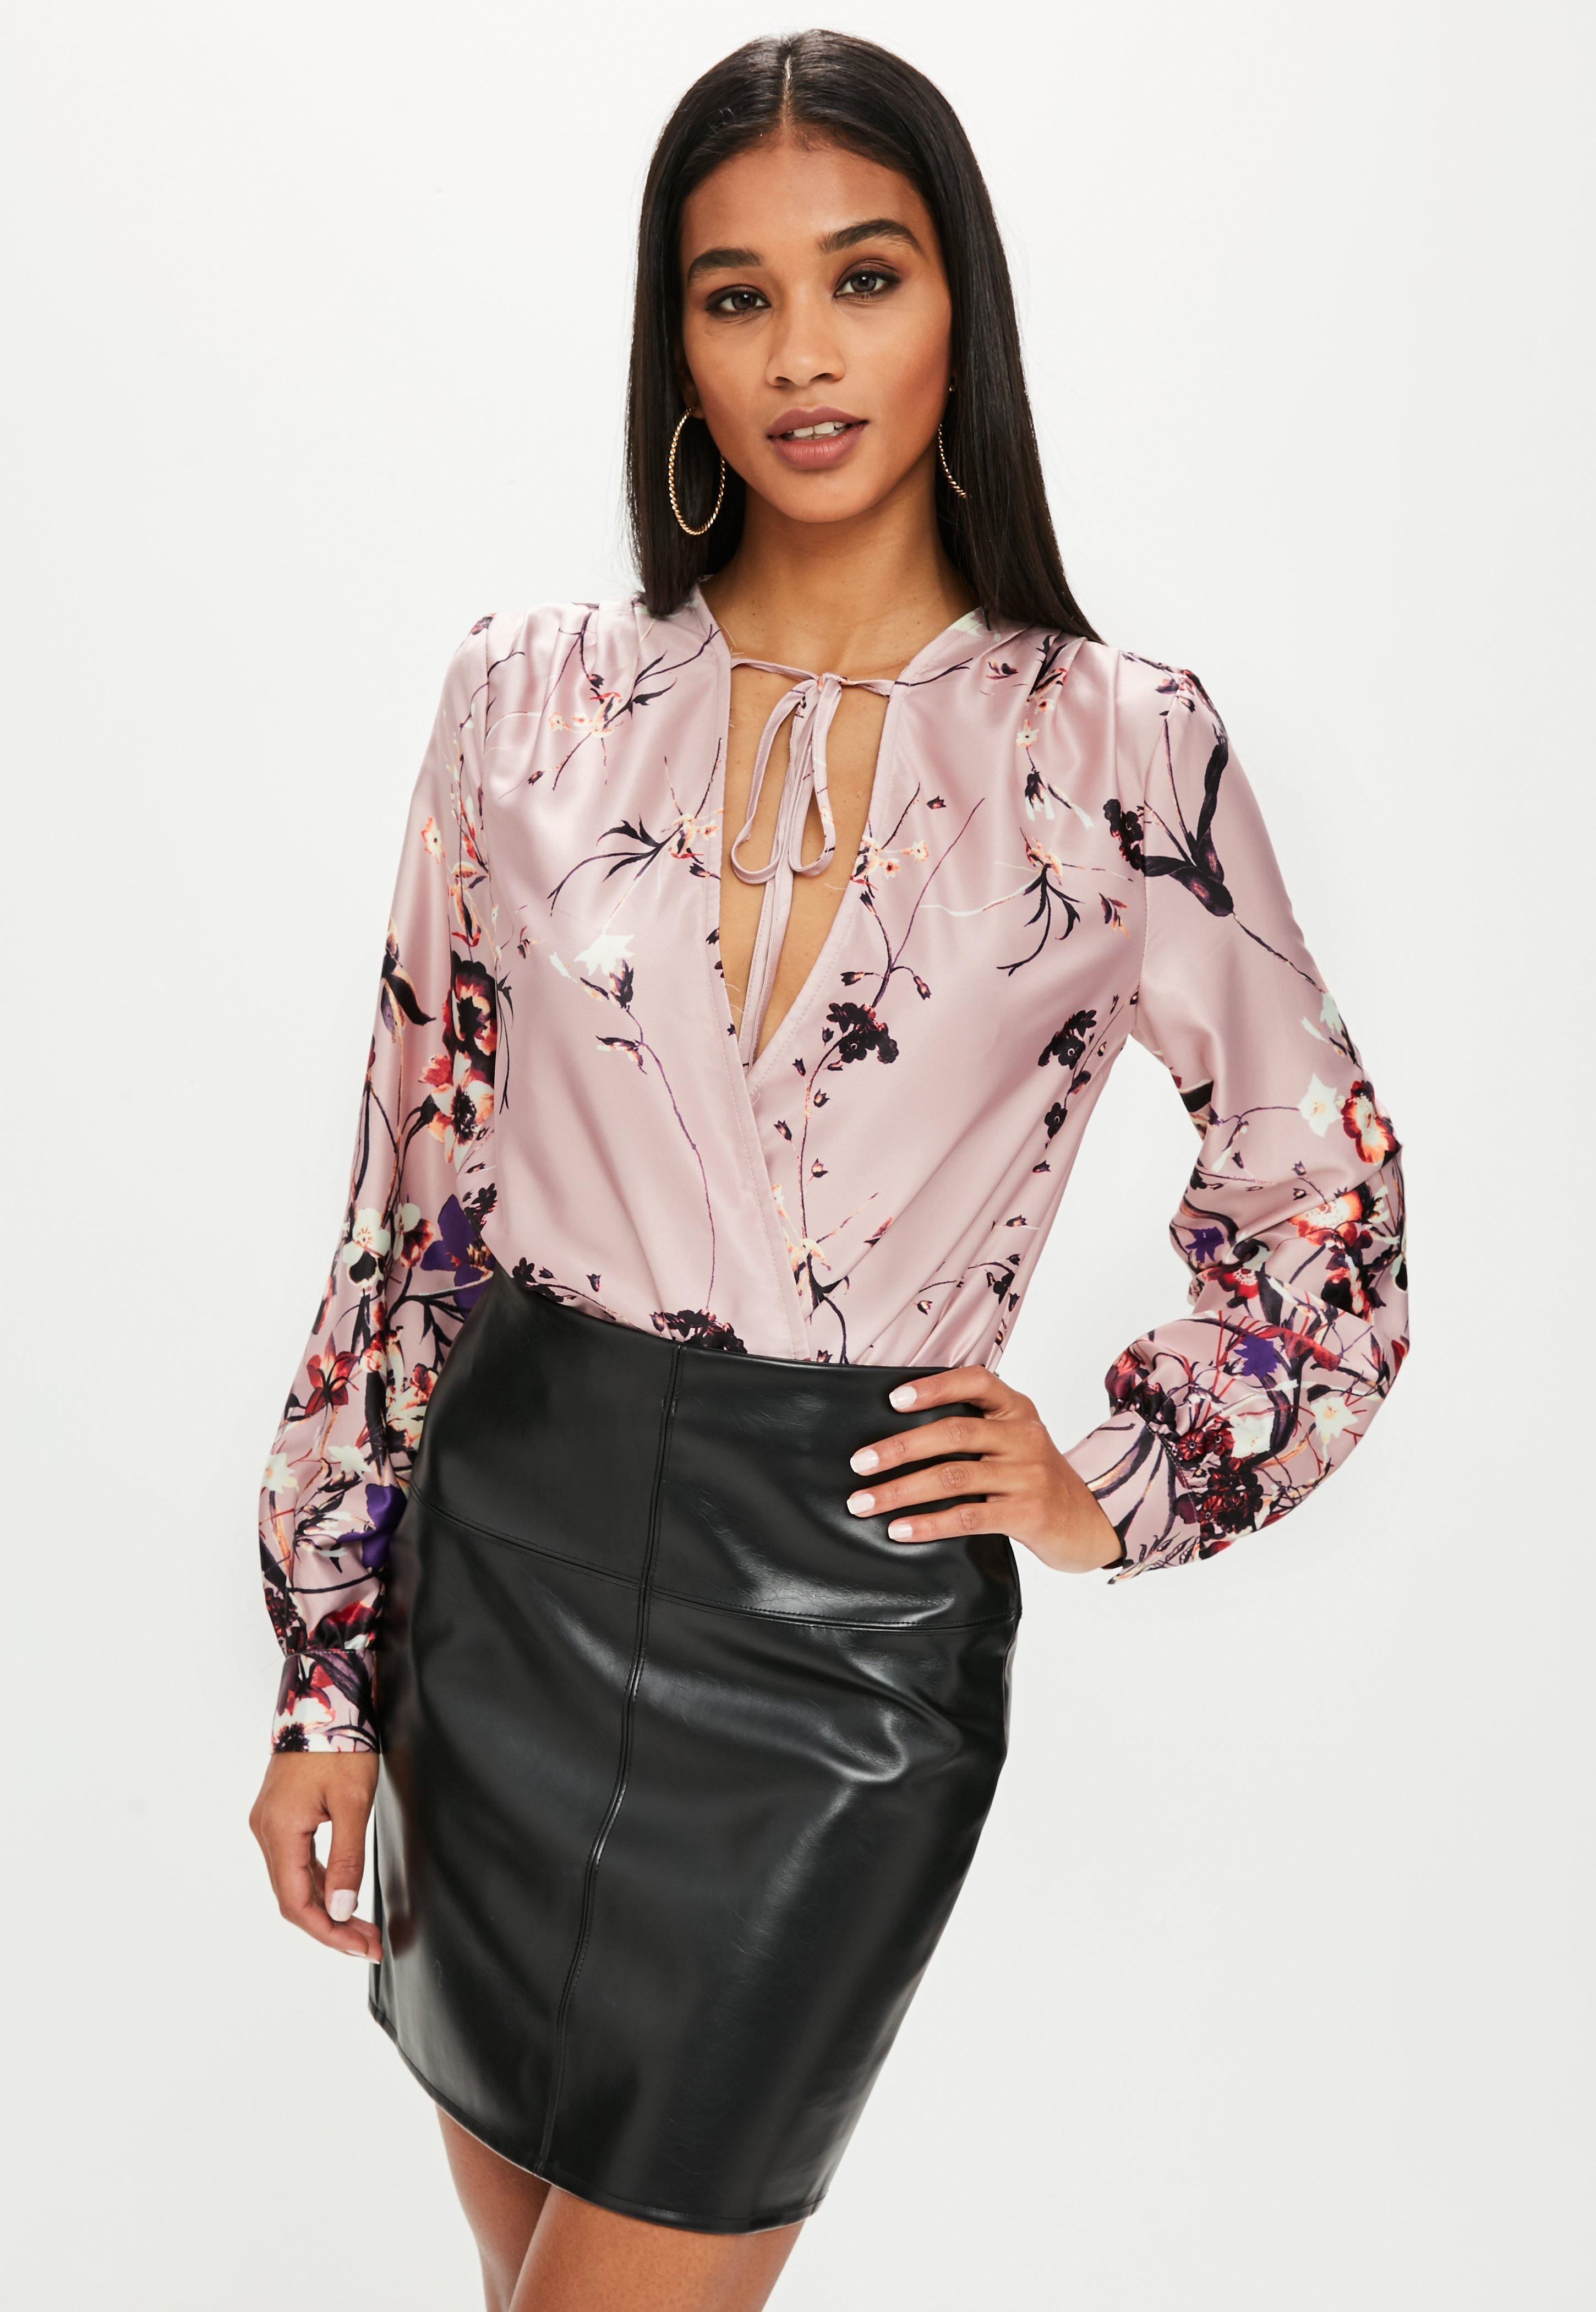 7b97bb7676 Lyst - Missguided Pink Floral Tie Front Bodysuit in Pink